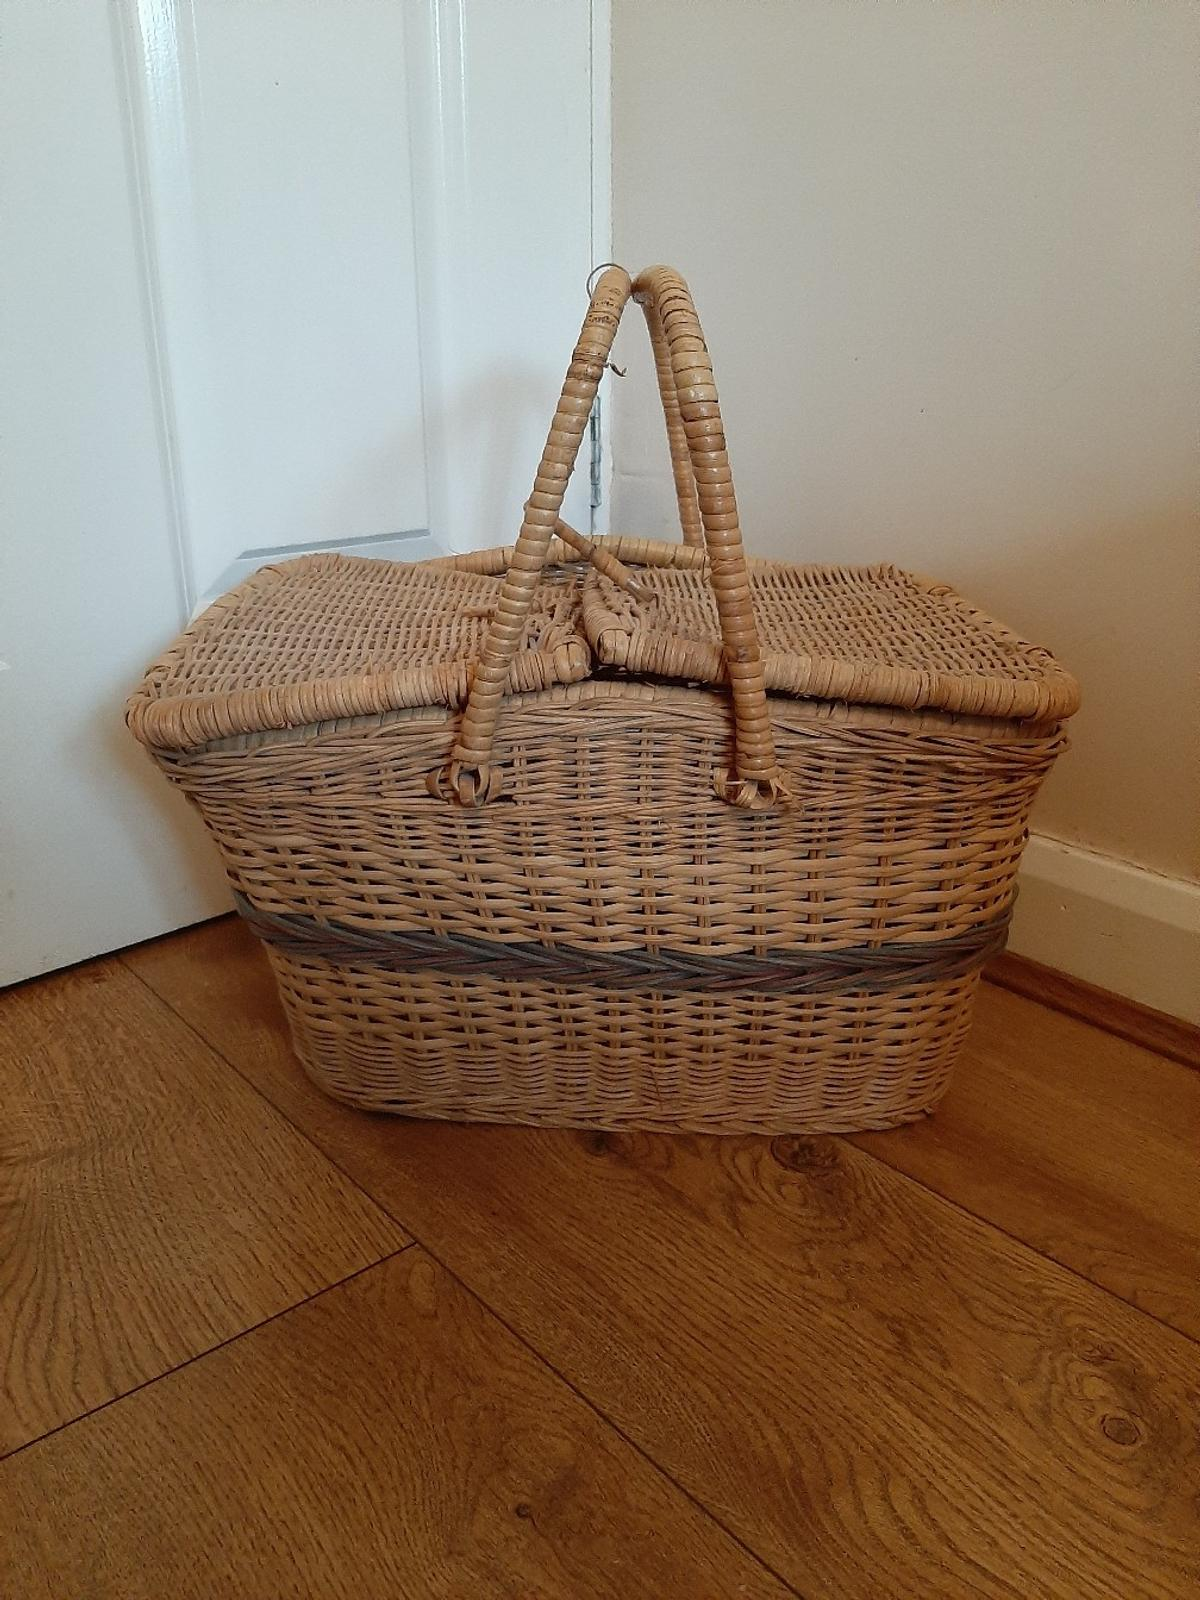 1950s Vintage Wicker Picnic Basket In Dy8 Dudley For 8 00 For Sale Shpock